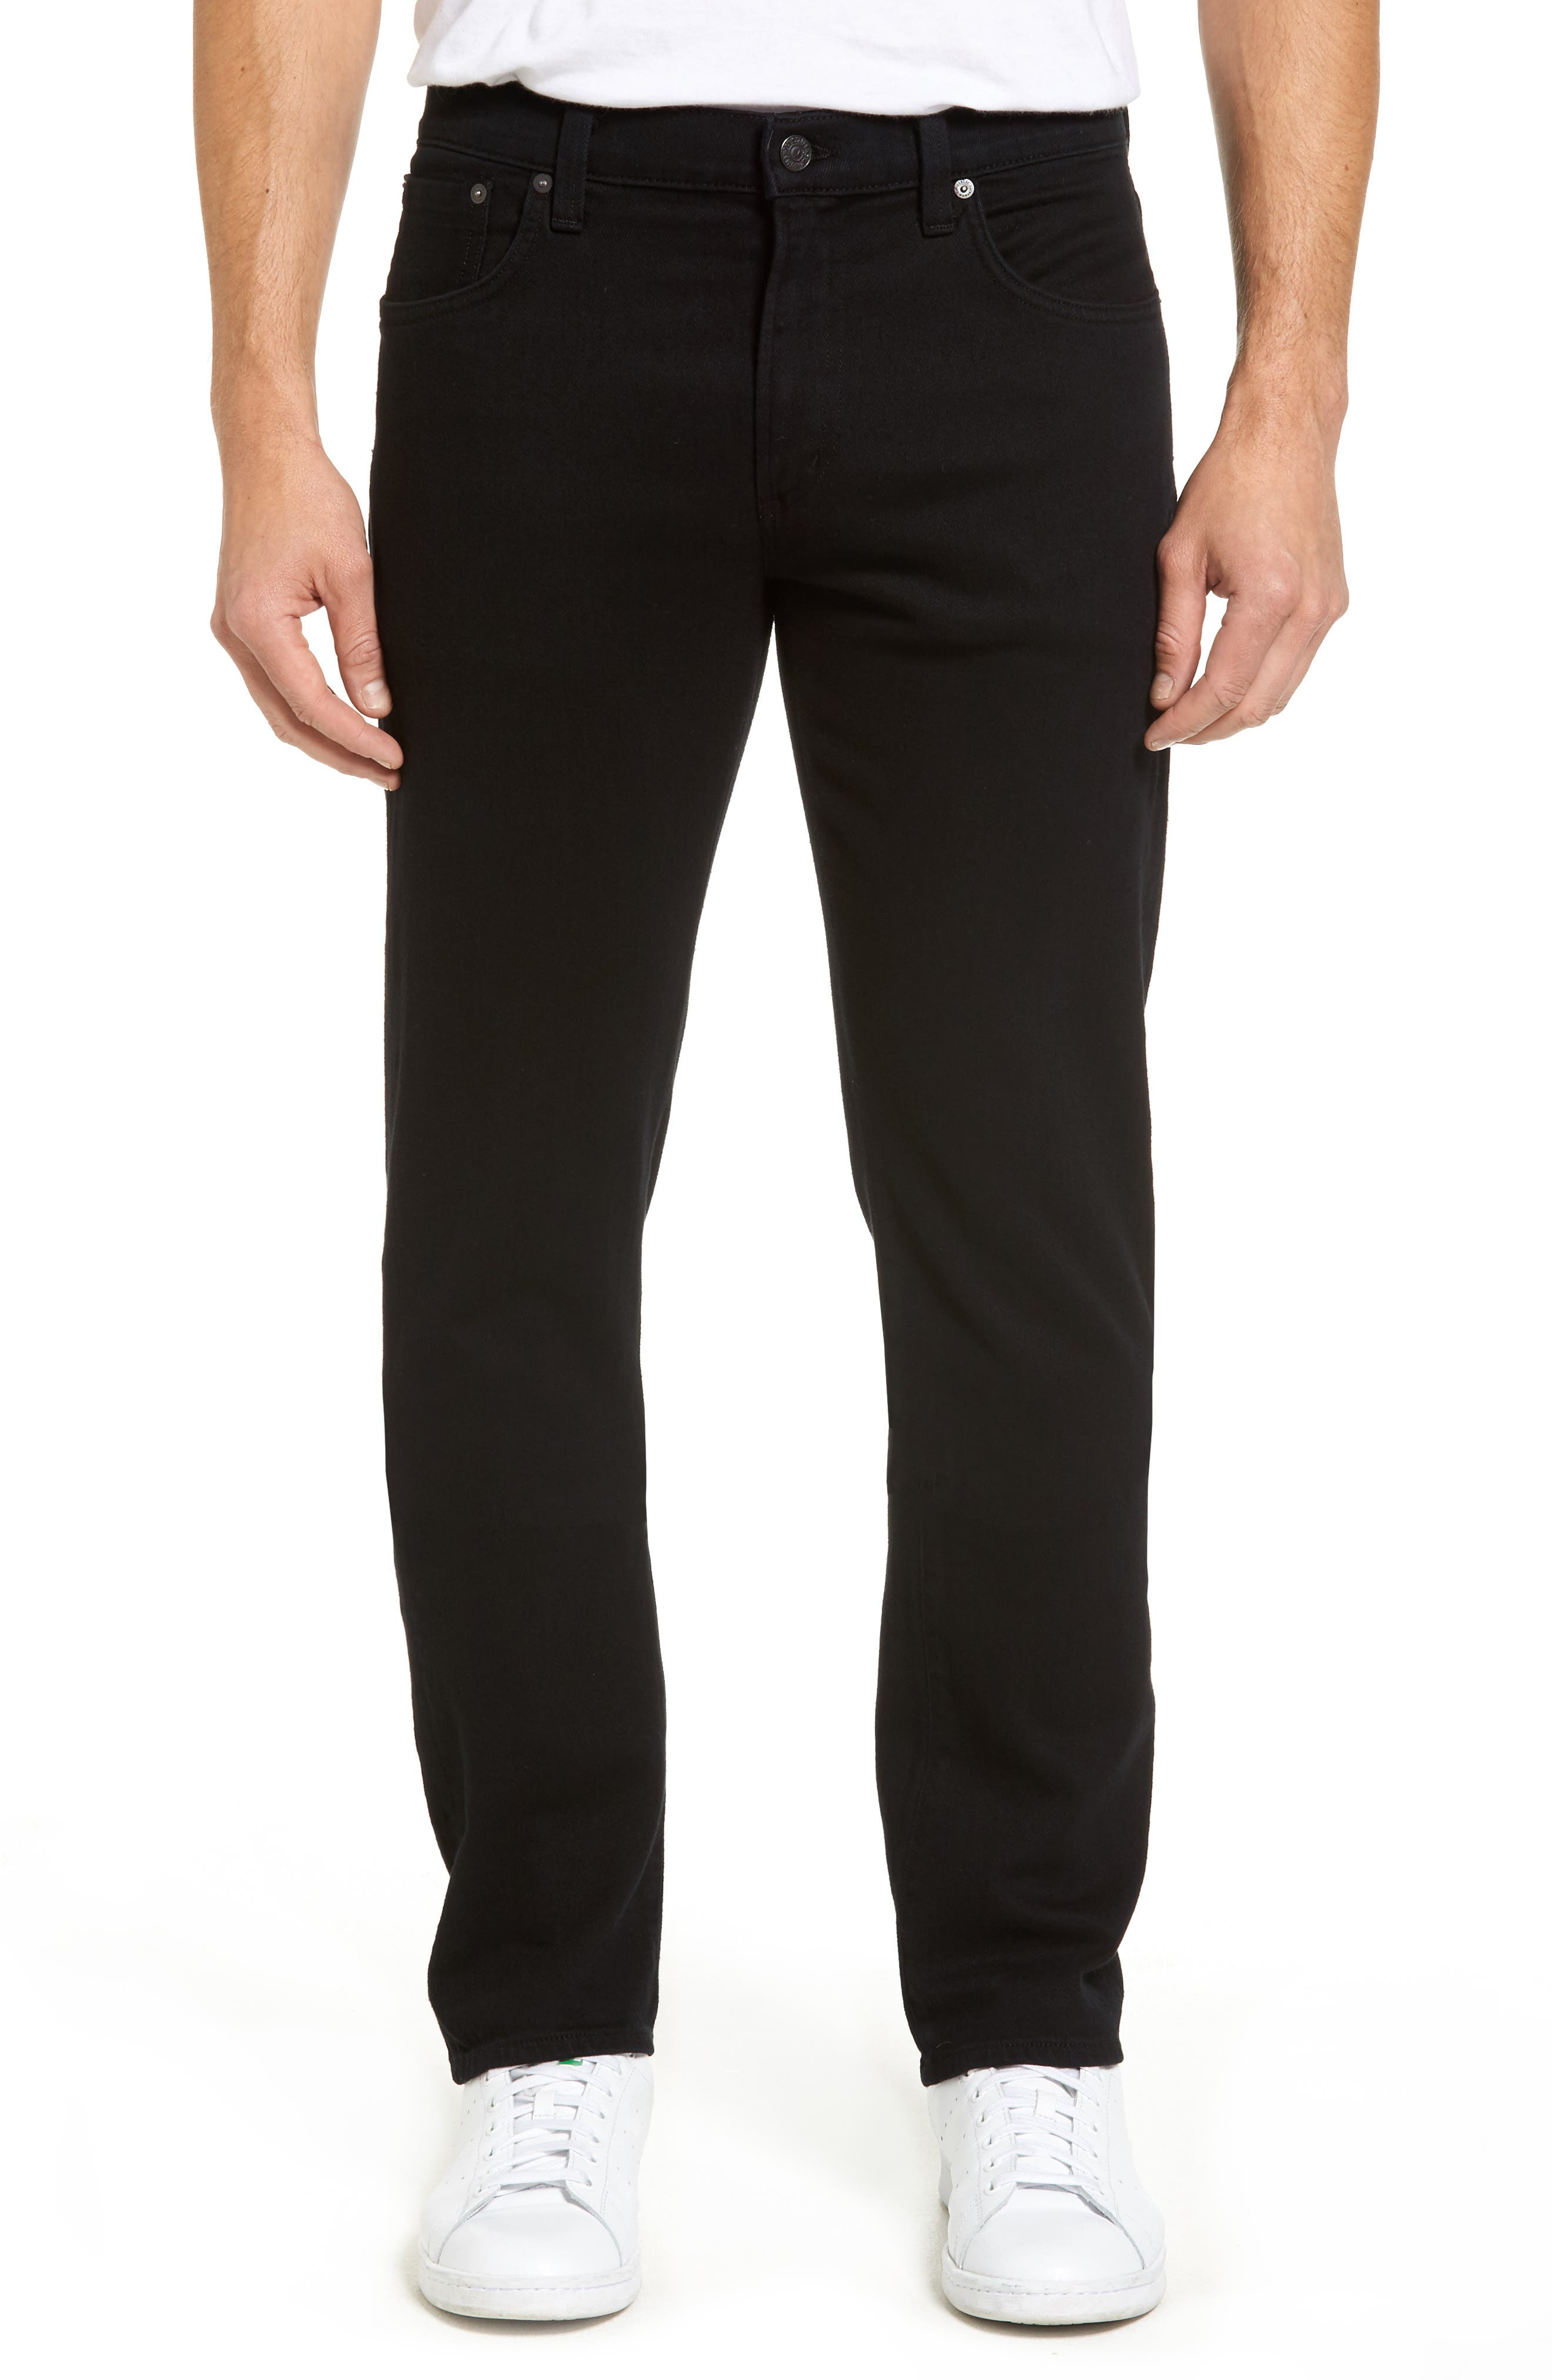 Main Image - Citizens of Humanity Core Slim Straight Leg Jeans (Midnight) (Tall)